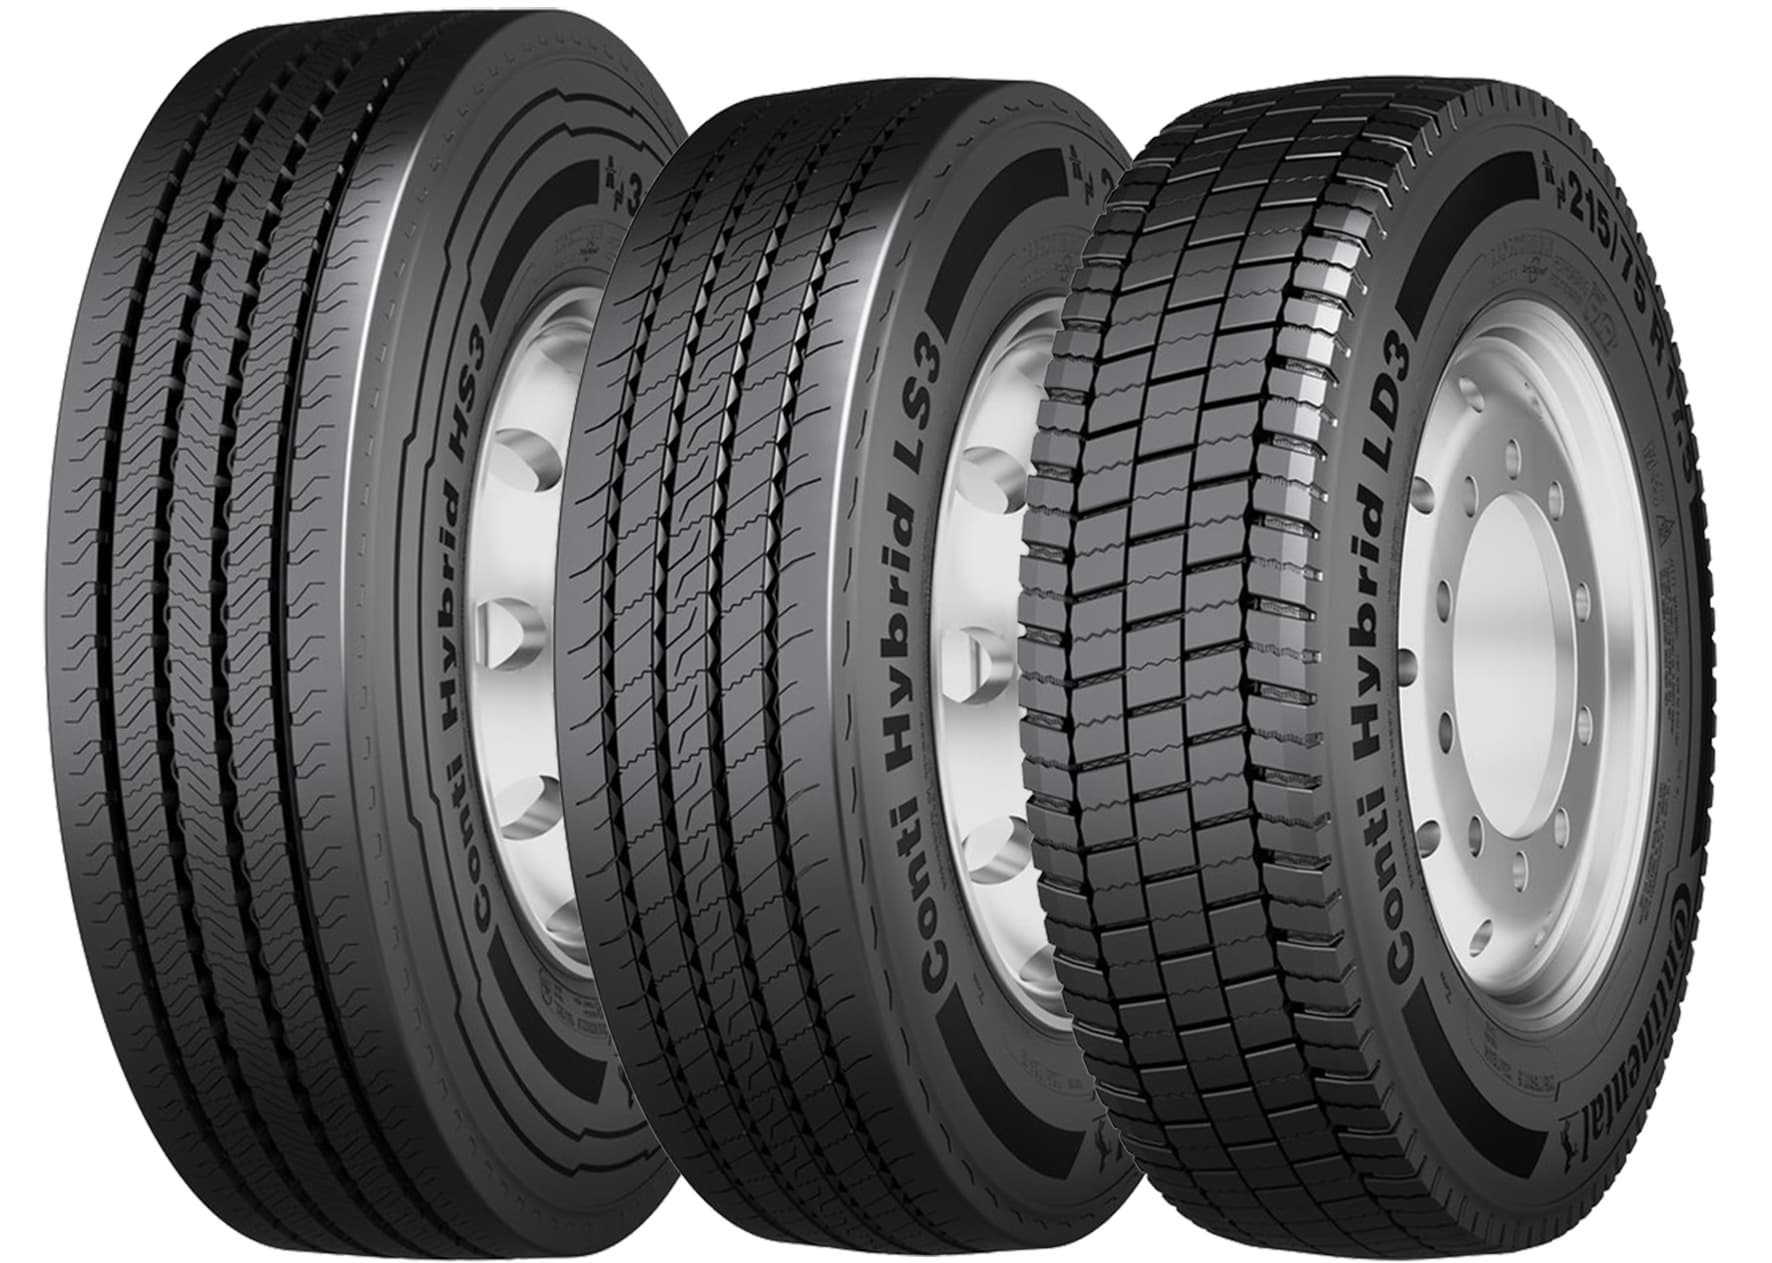 General Grand Touring Tires